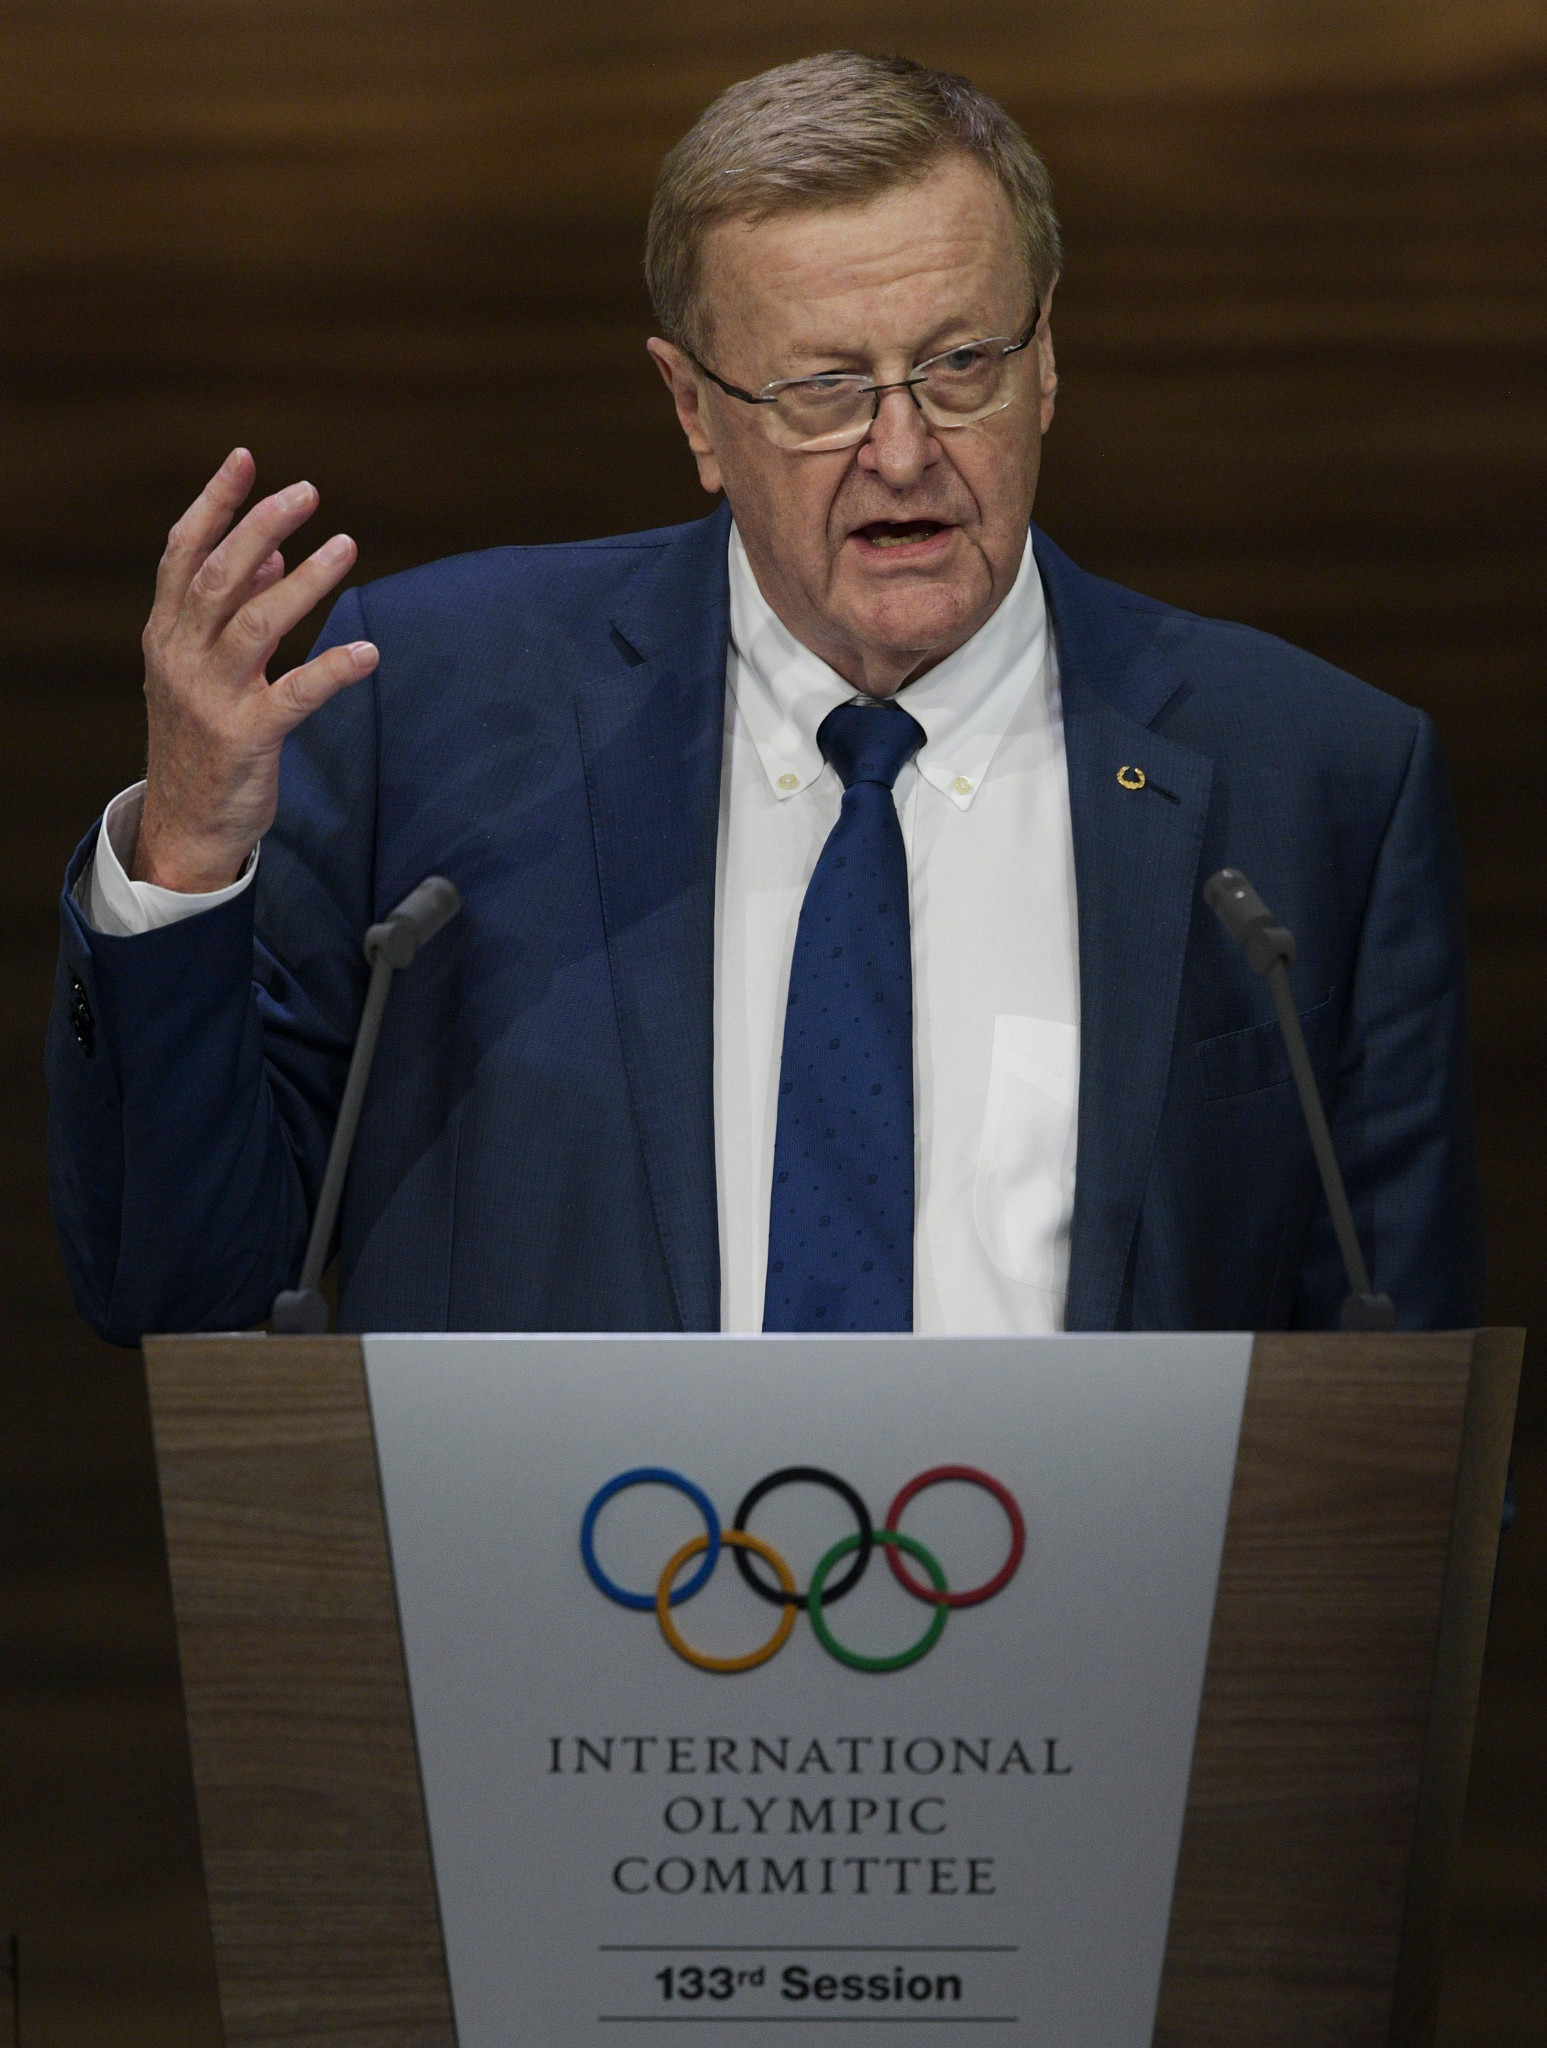 ICAS President John Coates called the division's creation